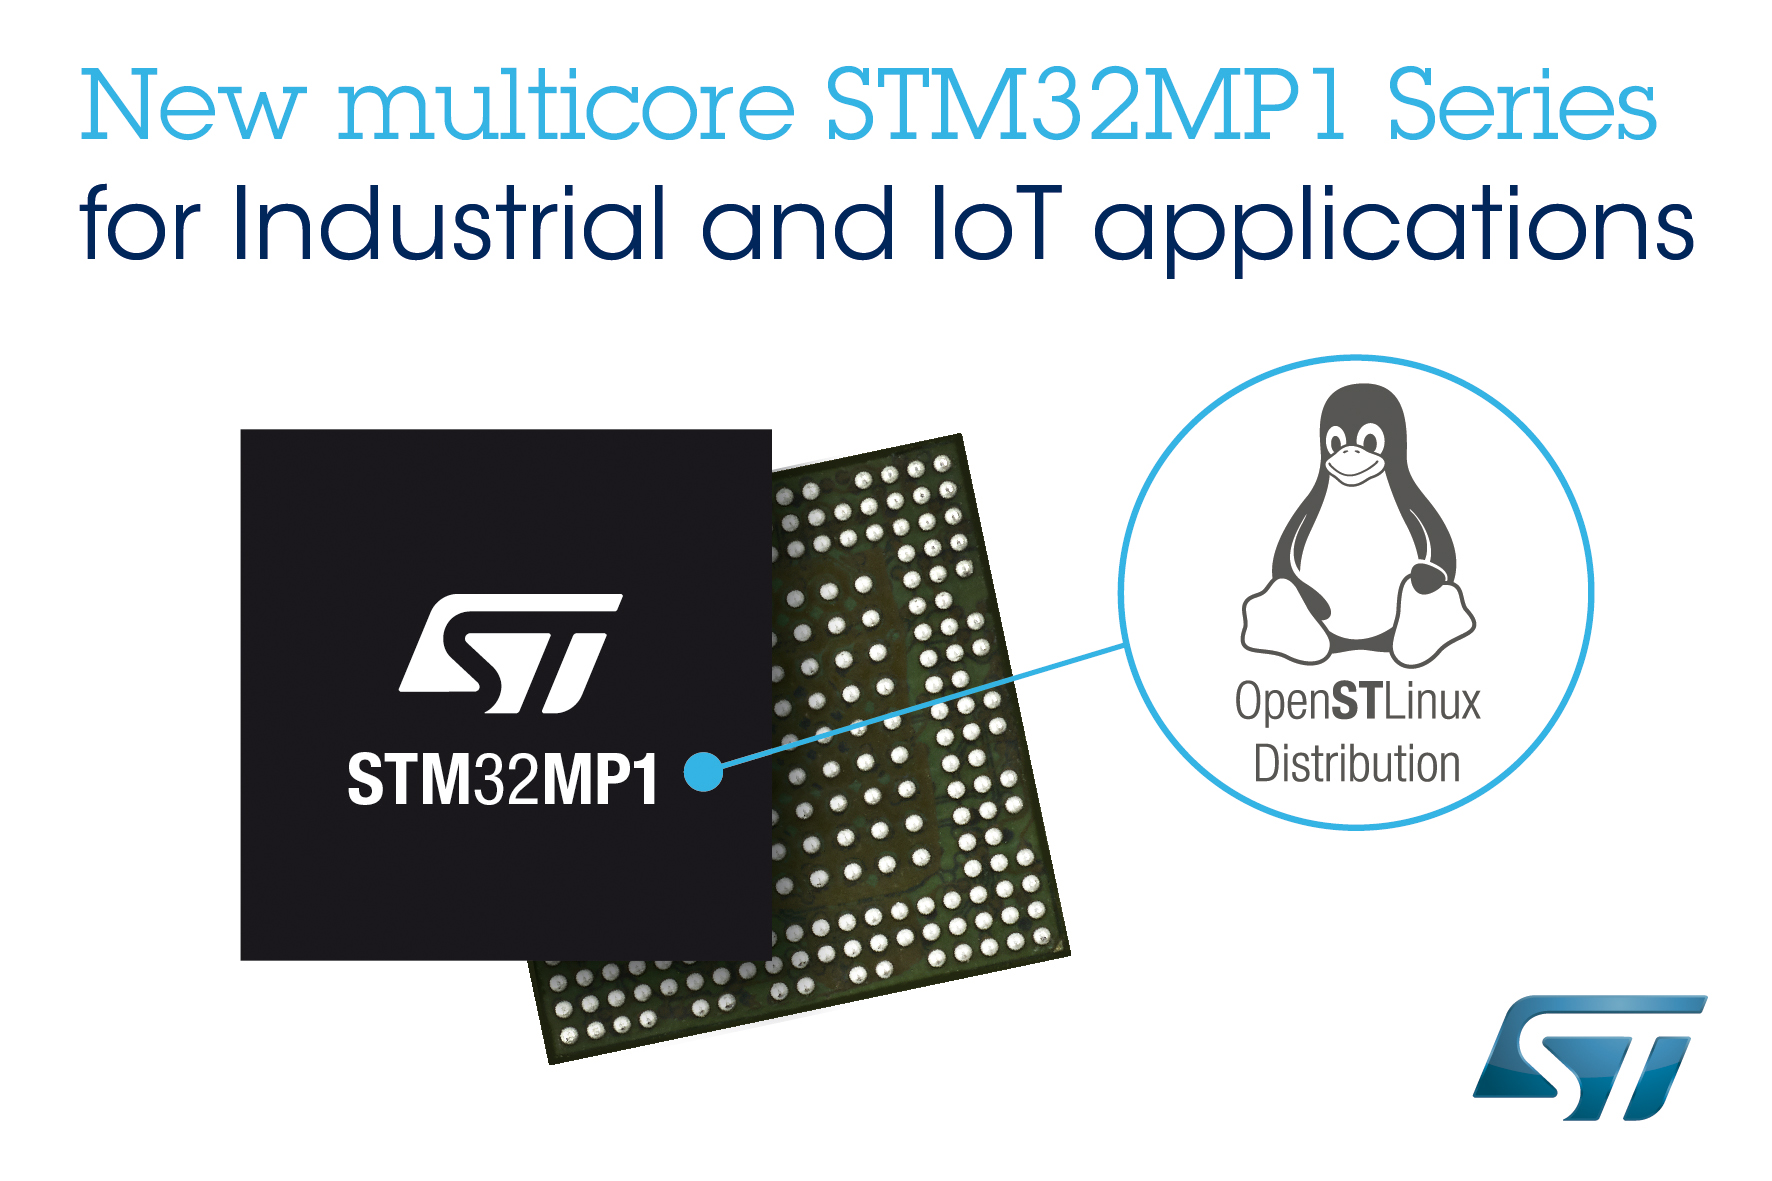 STMicroelectronics Launches STM32MP1 IoT Microprocessor Series